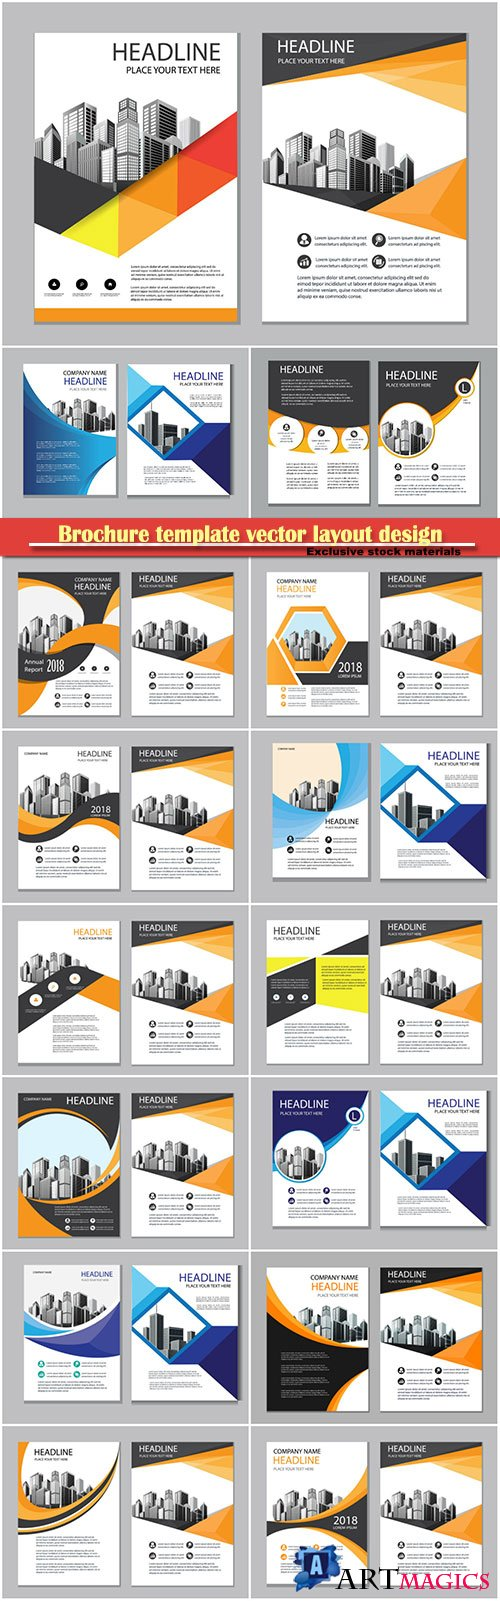 Brochure template vector layout design, corporate business annual report, magazine, flyer mockup # 135